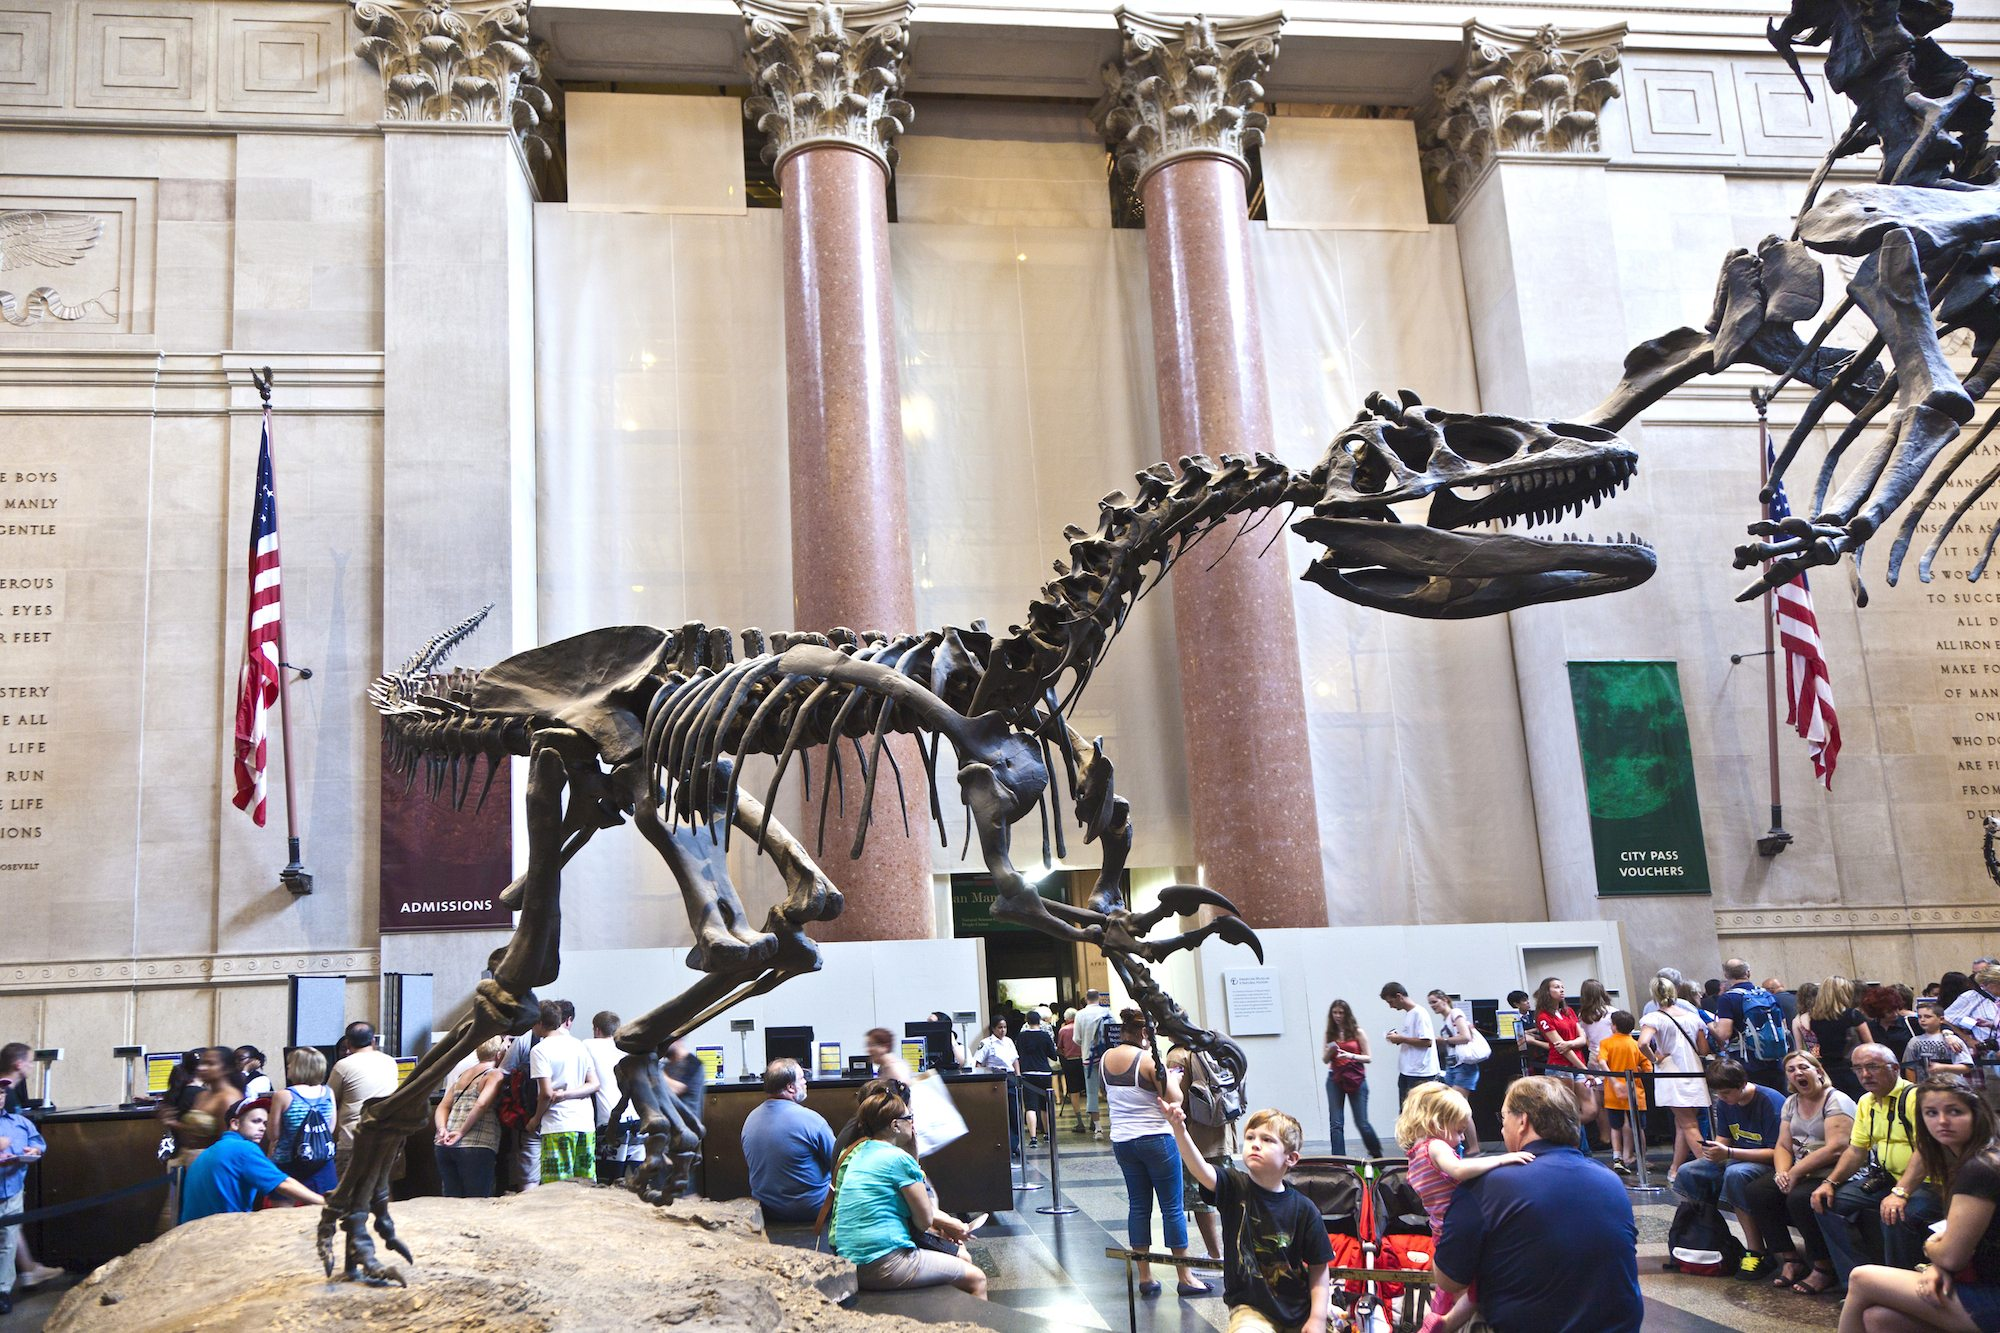 4 Amazing Things to Do the Next Time You Visit New York City